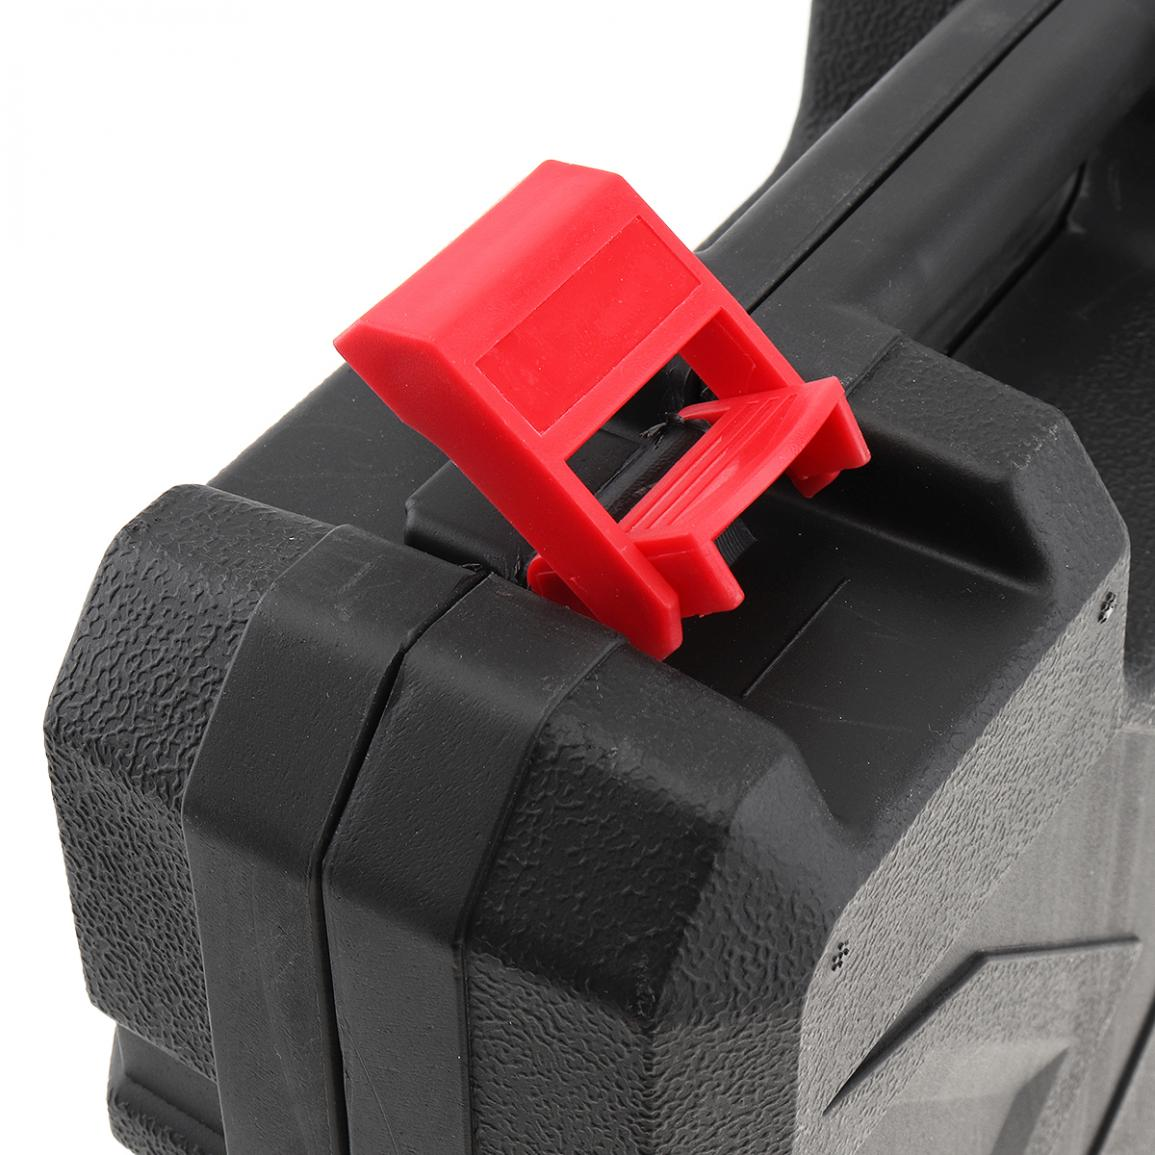 Image 5 - VOTO Power Tool Suitcase 21V Dedicated Tool Box Holder Storage Case with 270mm Length for Lithium Drill Electric Screwdriverpower drill holderpower tool caseelectric drill holder -